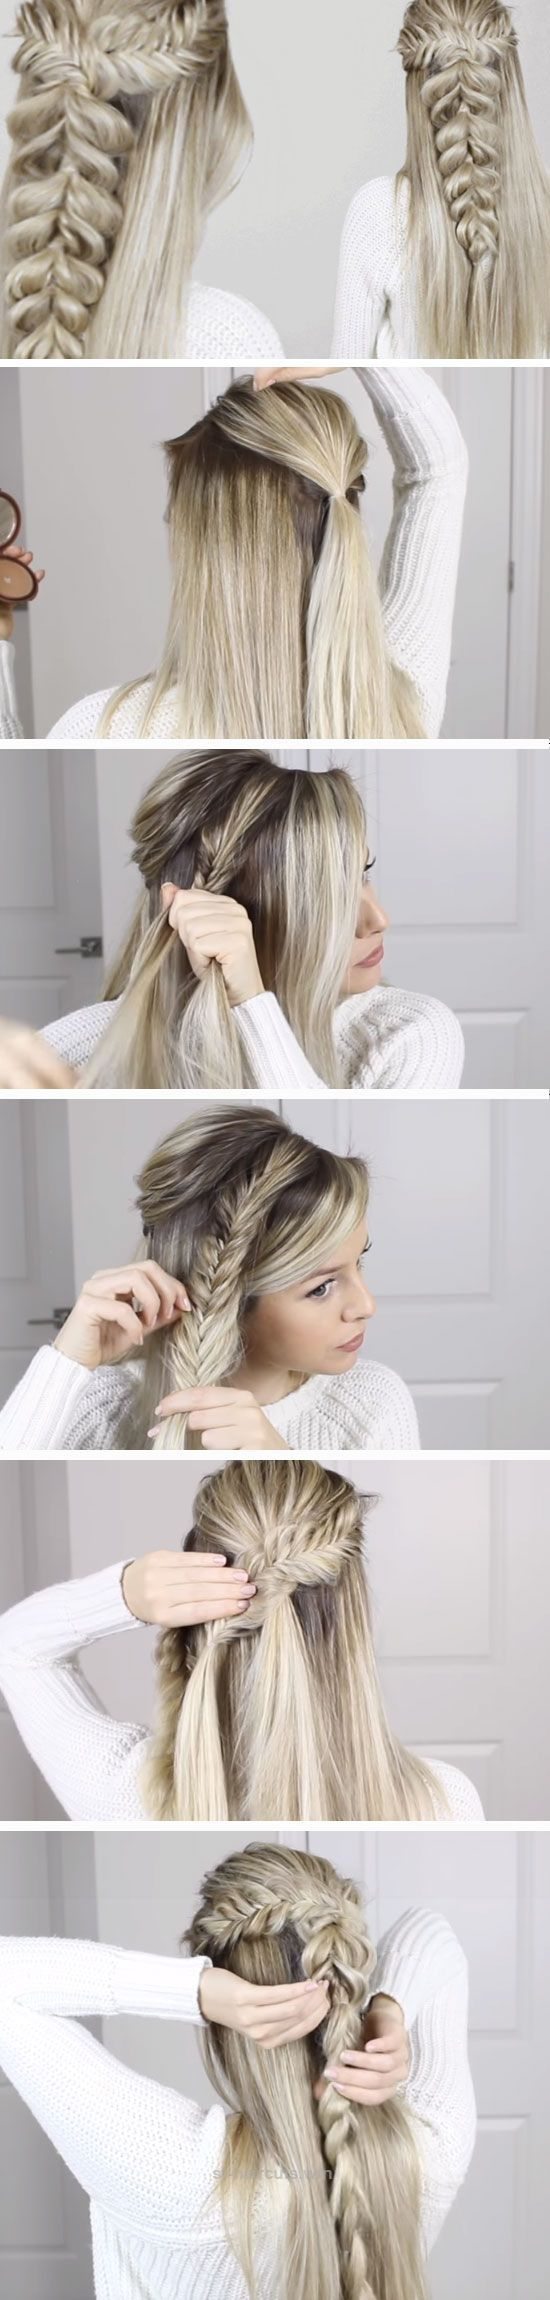 434 best Hairstyle and hair accessories images on Pinterest ...